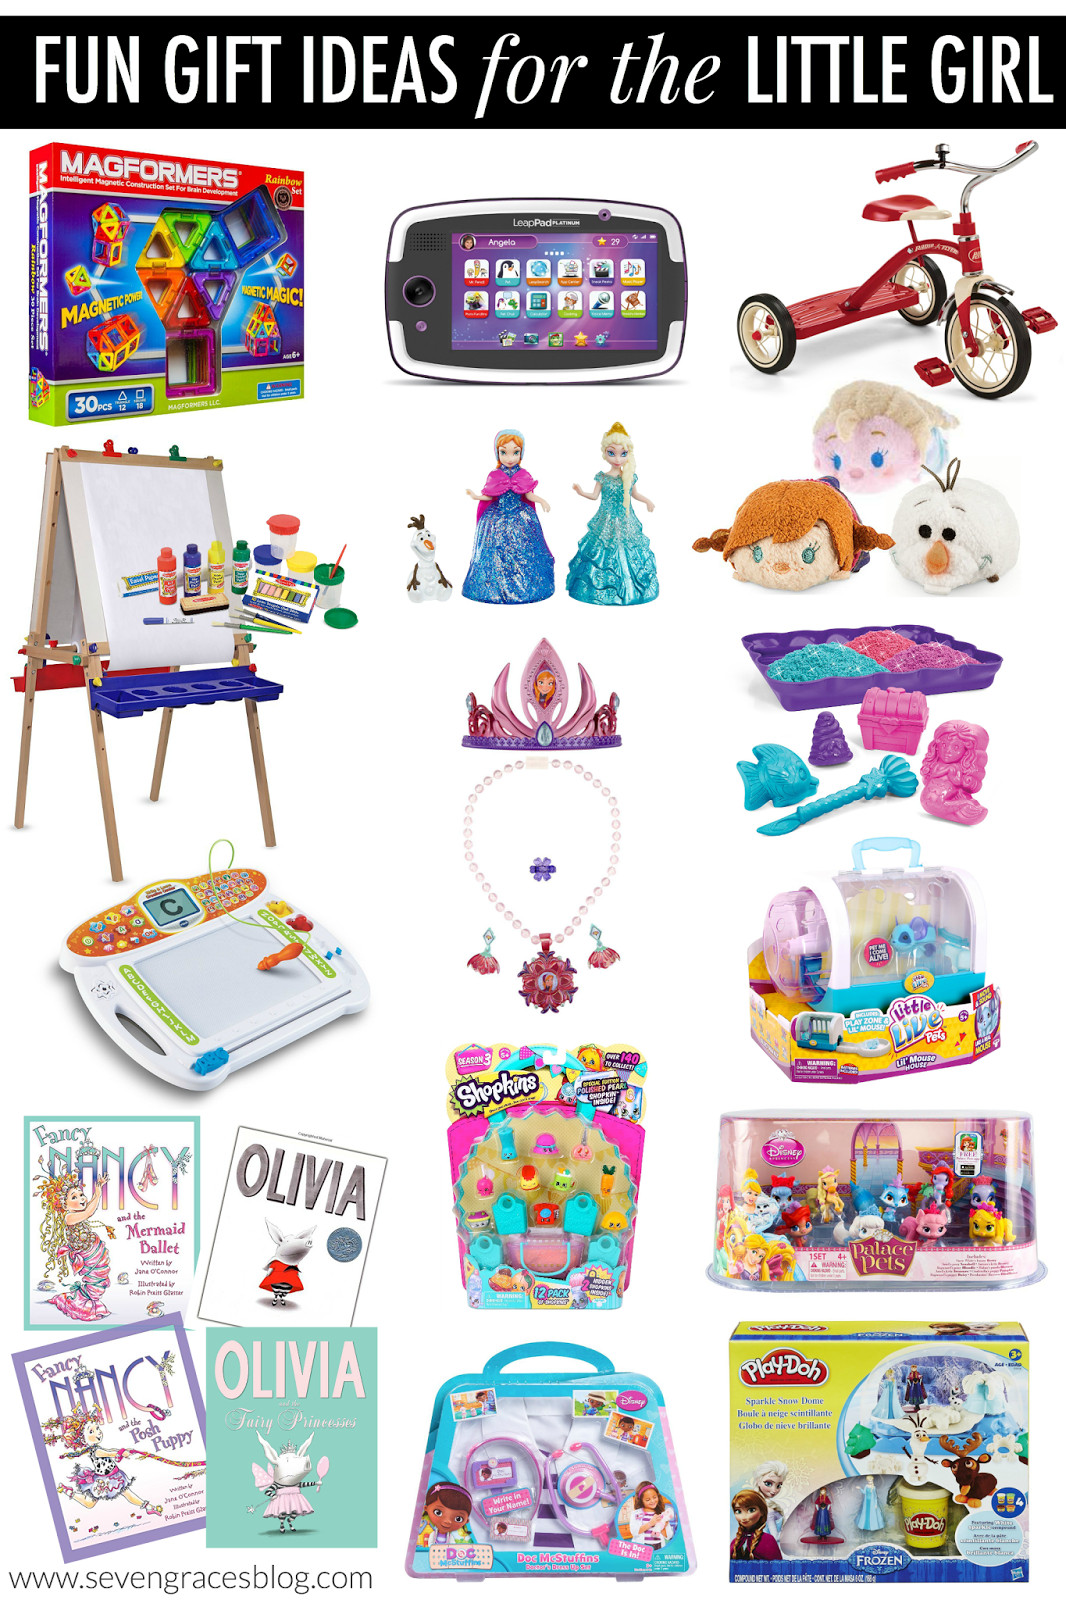 Best ideas about Christmas Gift Ideas For 12 Yr Old Girl . Save or Pin Christmas Gift Ideas for the Little Girl Seven Graces Now.